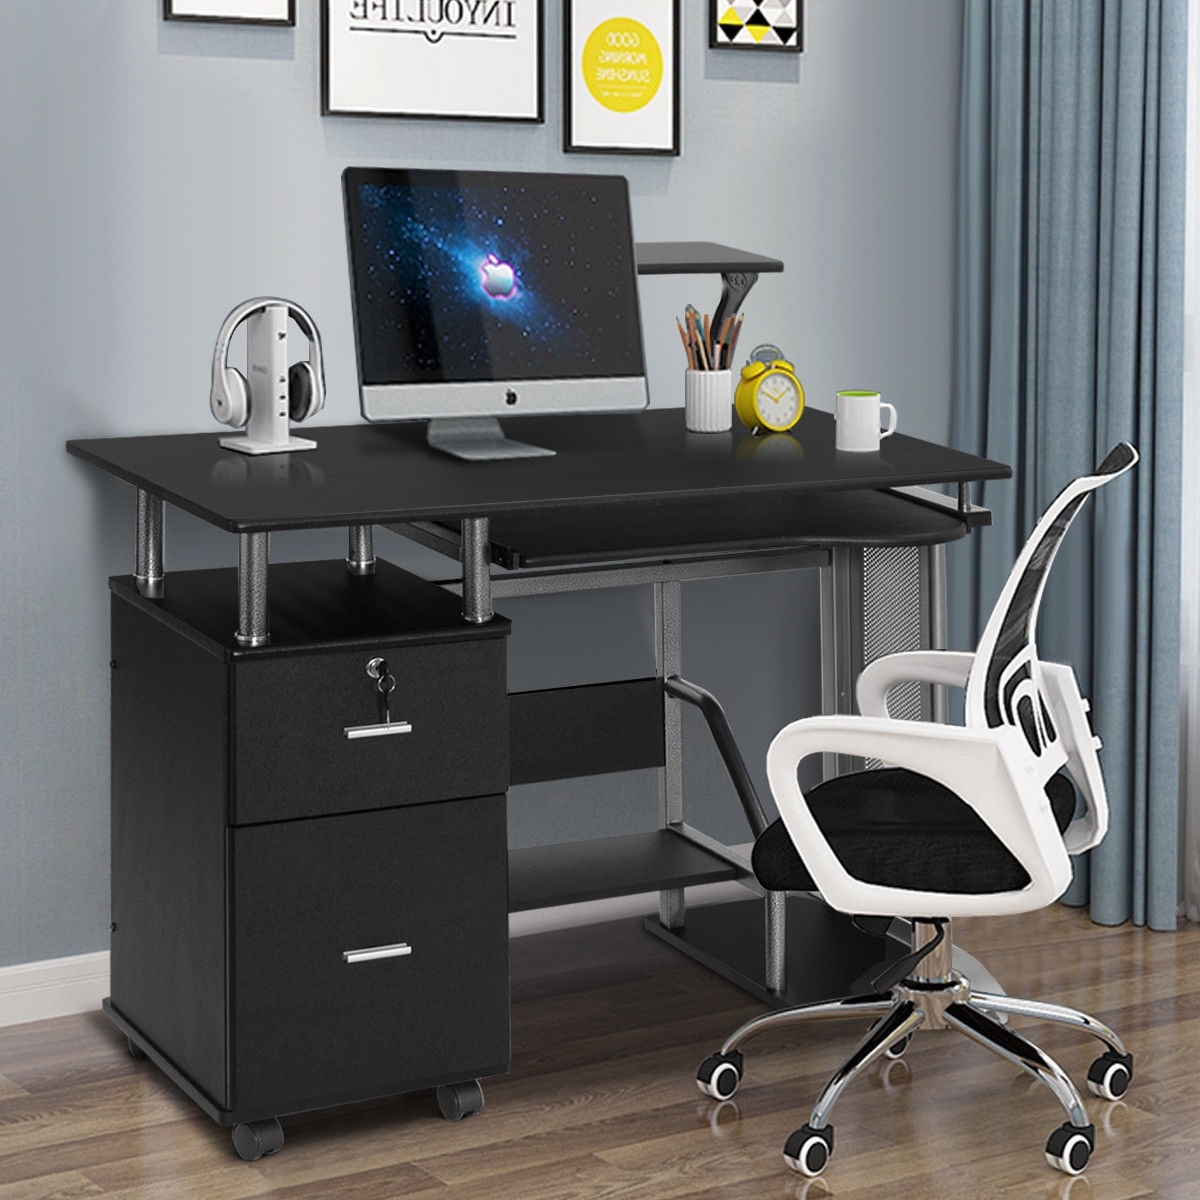 Costway Computer Desk Pc Laptop Table Workstation Home Office Furniture W Printer Shelf